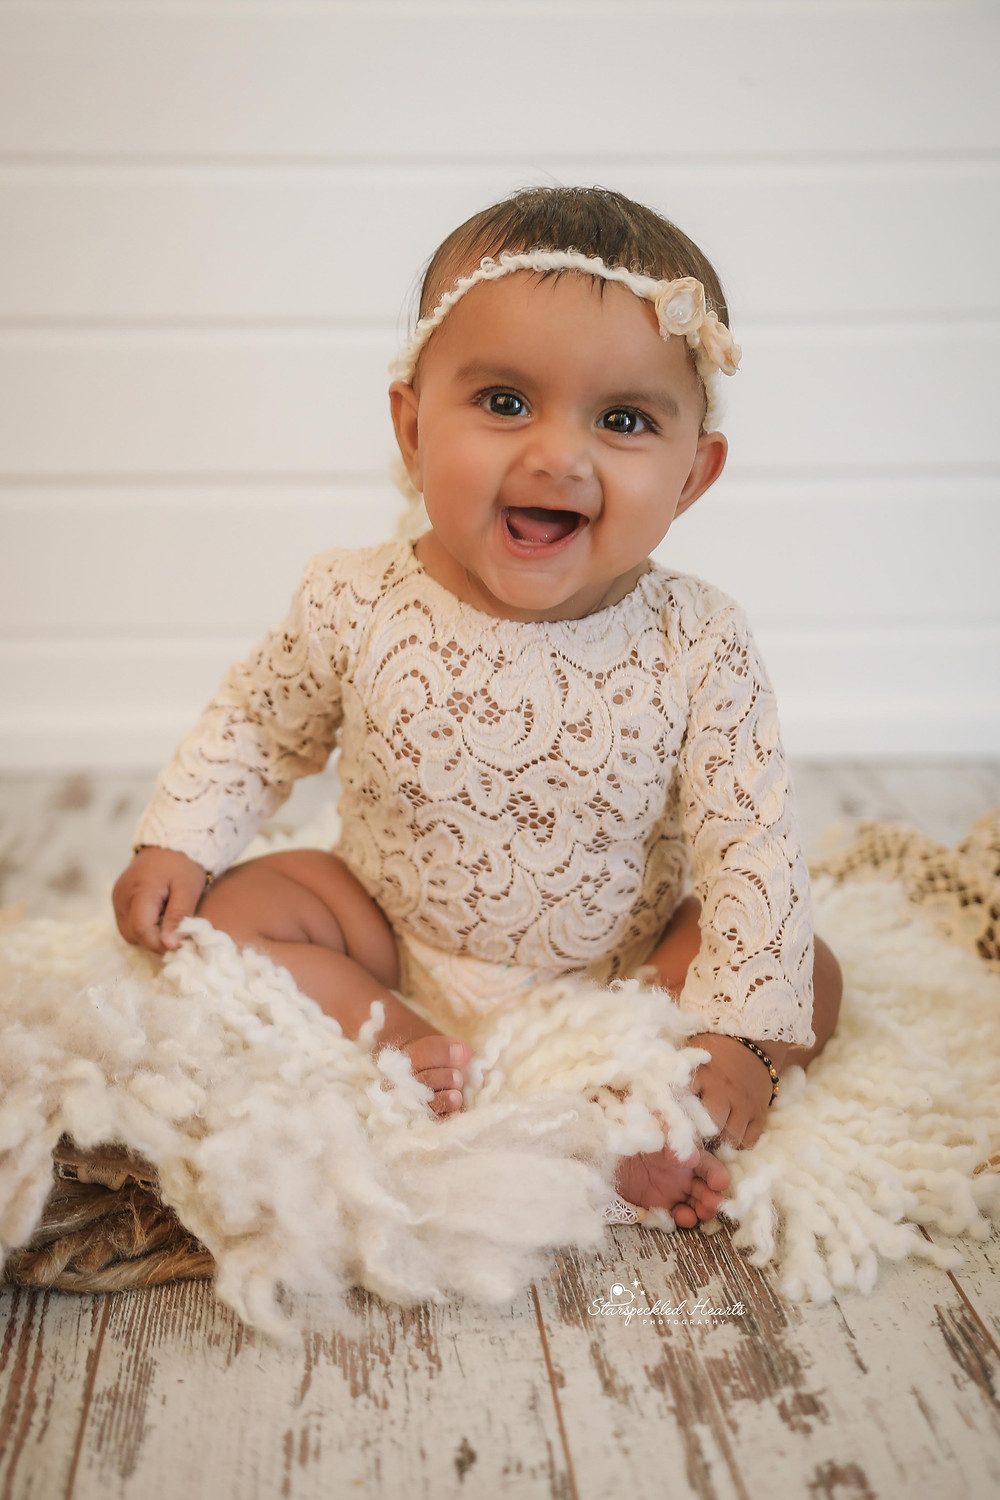 gorgeous baby girl with a big smile on her face wearing a white lacy romper